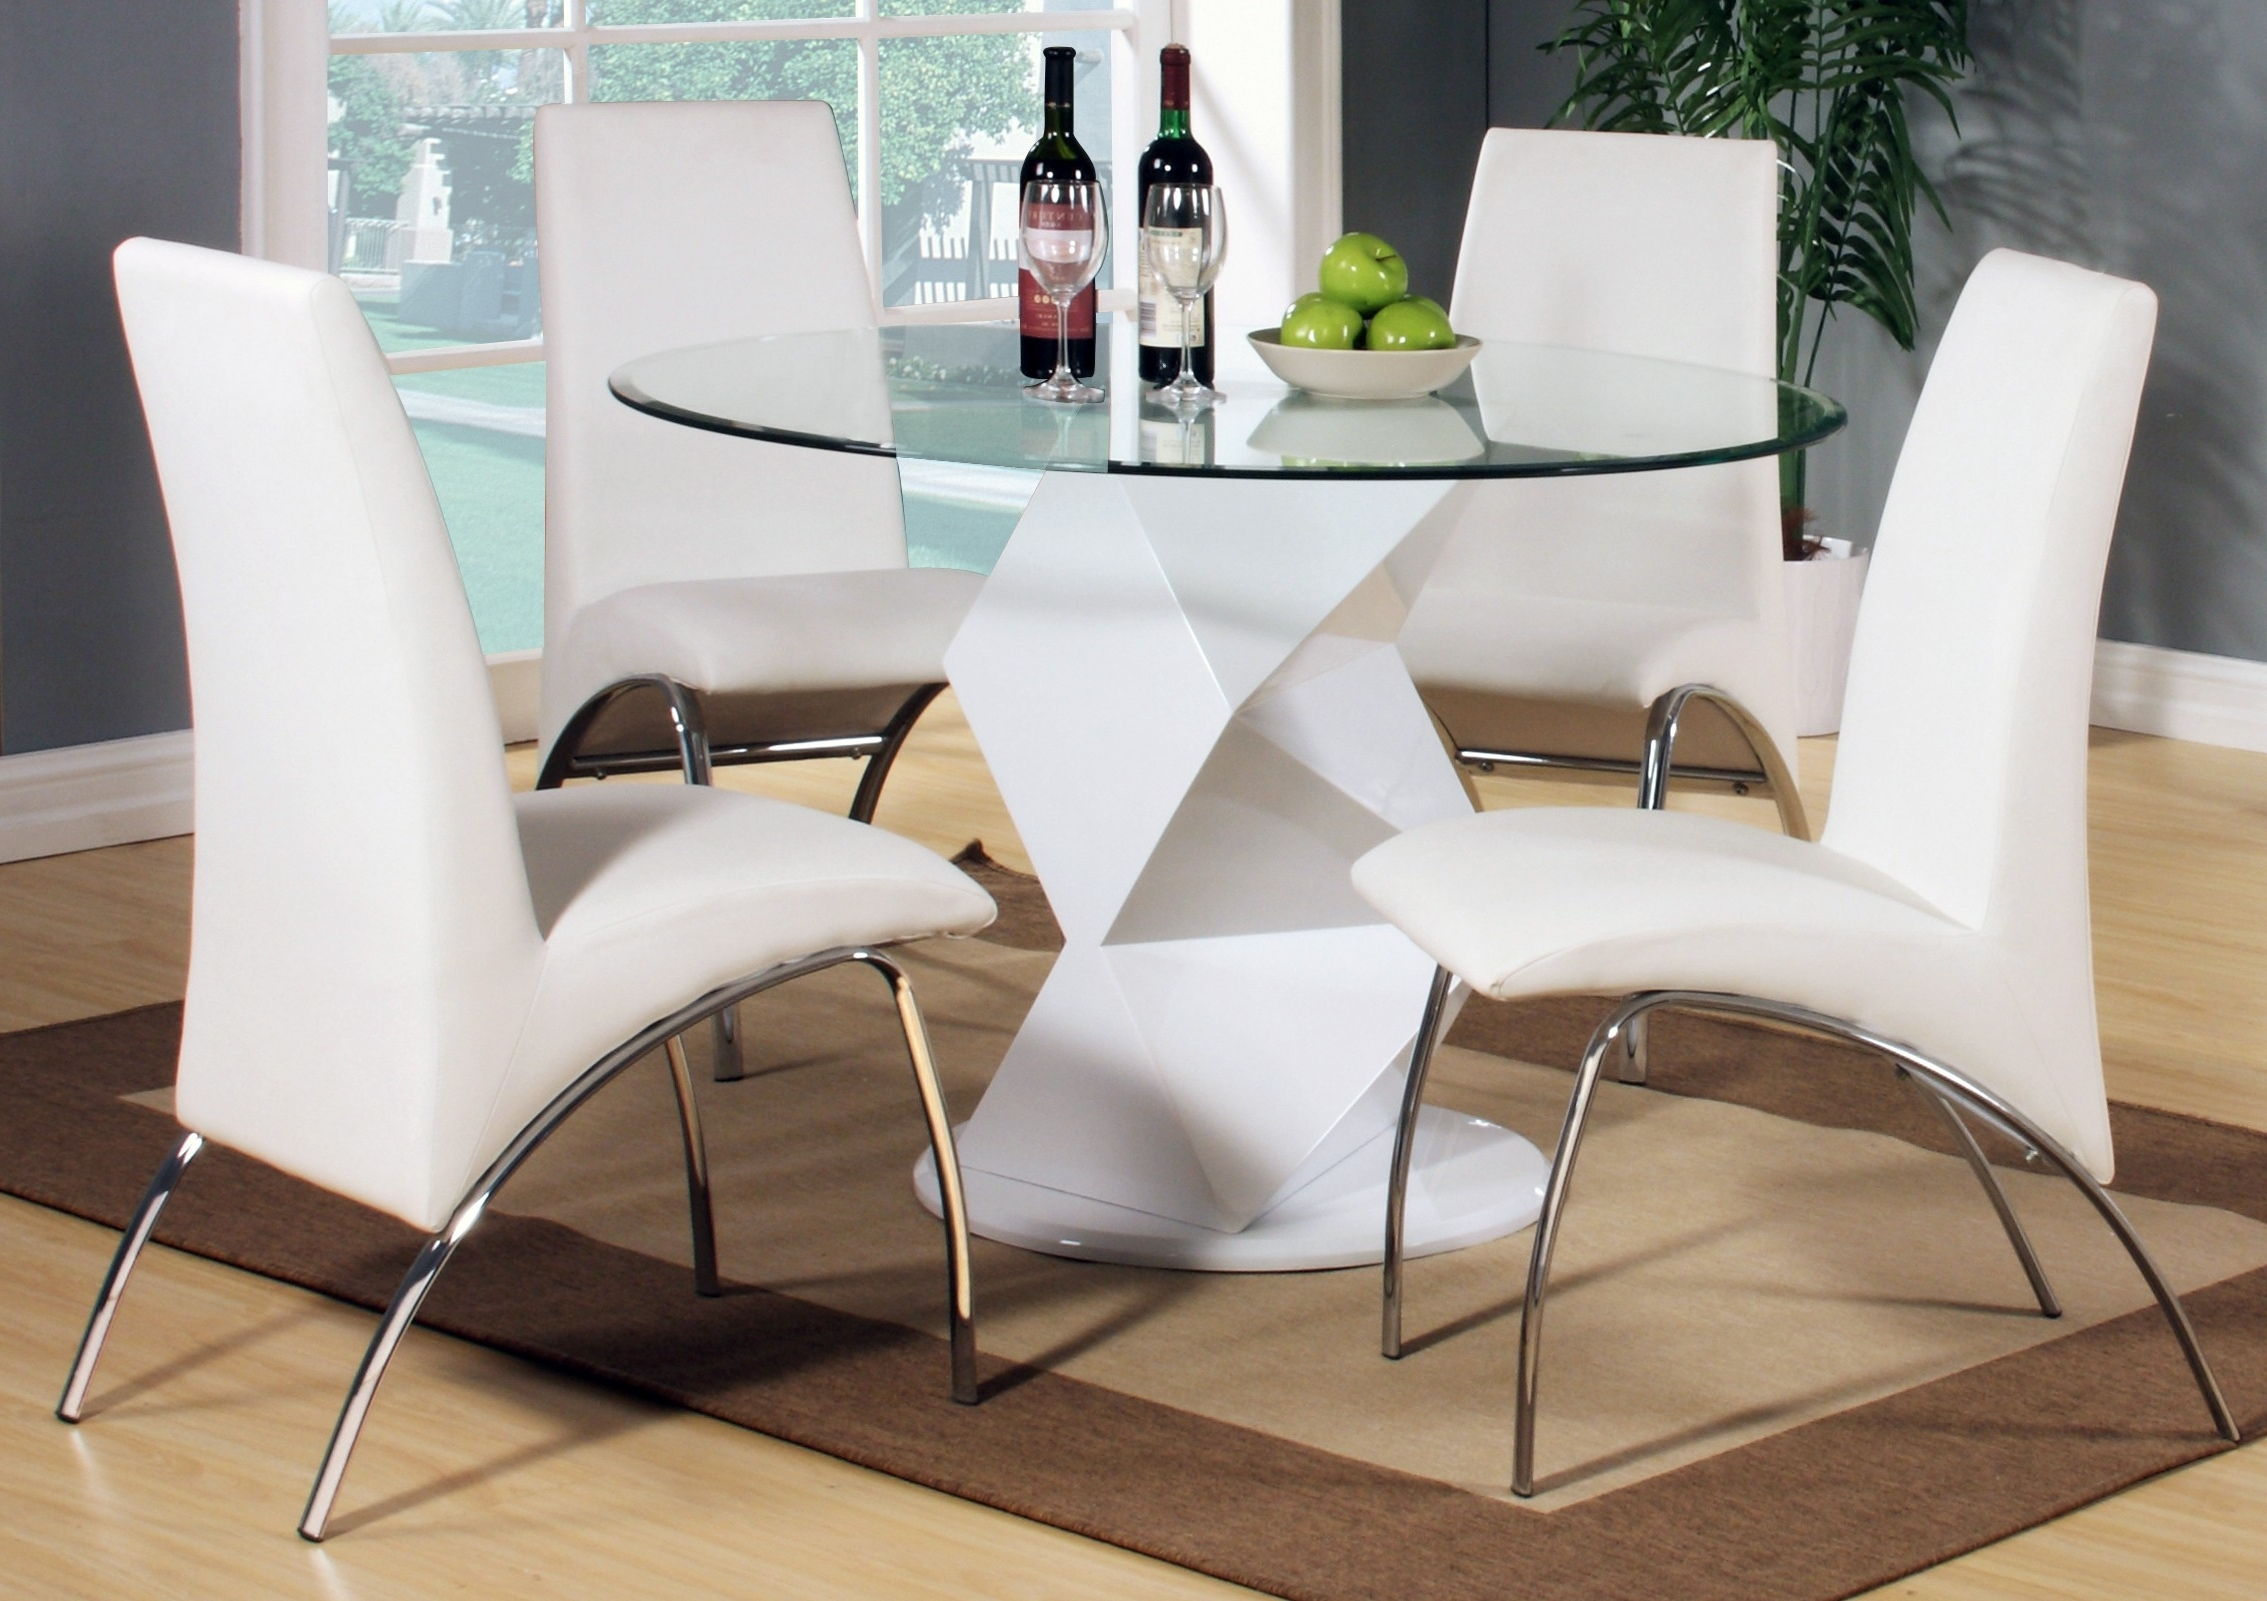 Well Liked High Gloss Round Dining Tables Regarding Finn White High Gloss Round Dining Table Set 4 Seater (View 22 of 25)